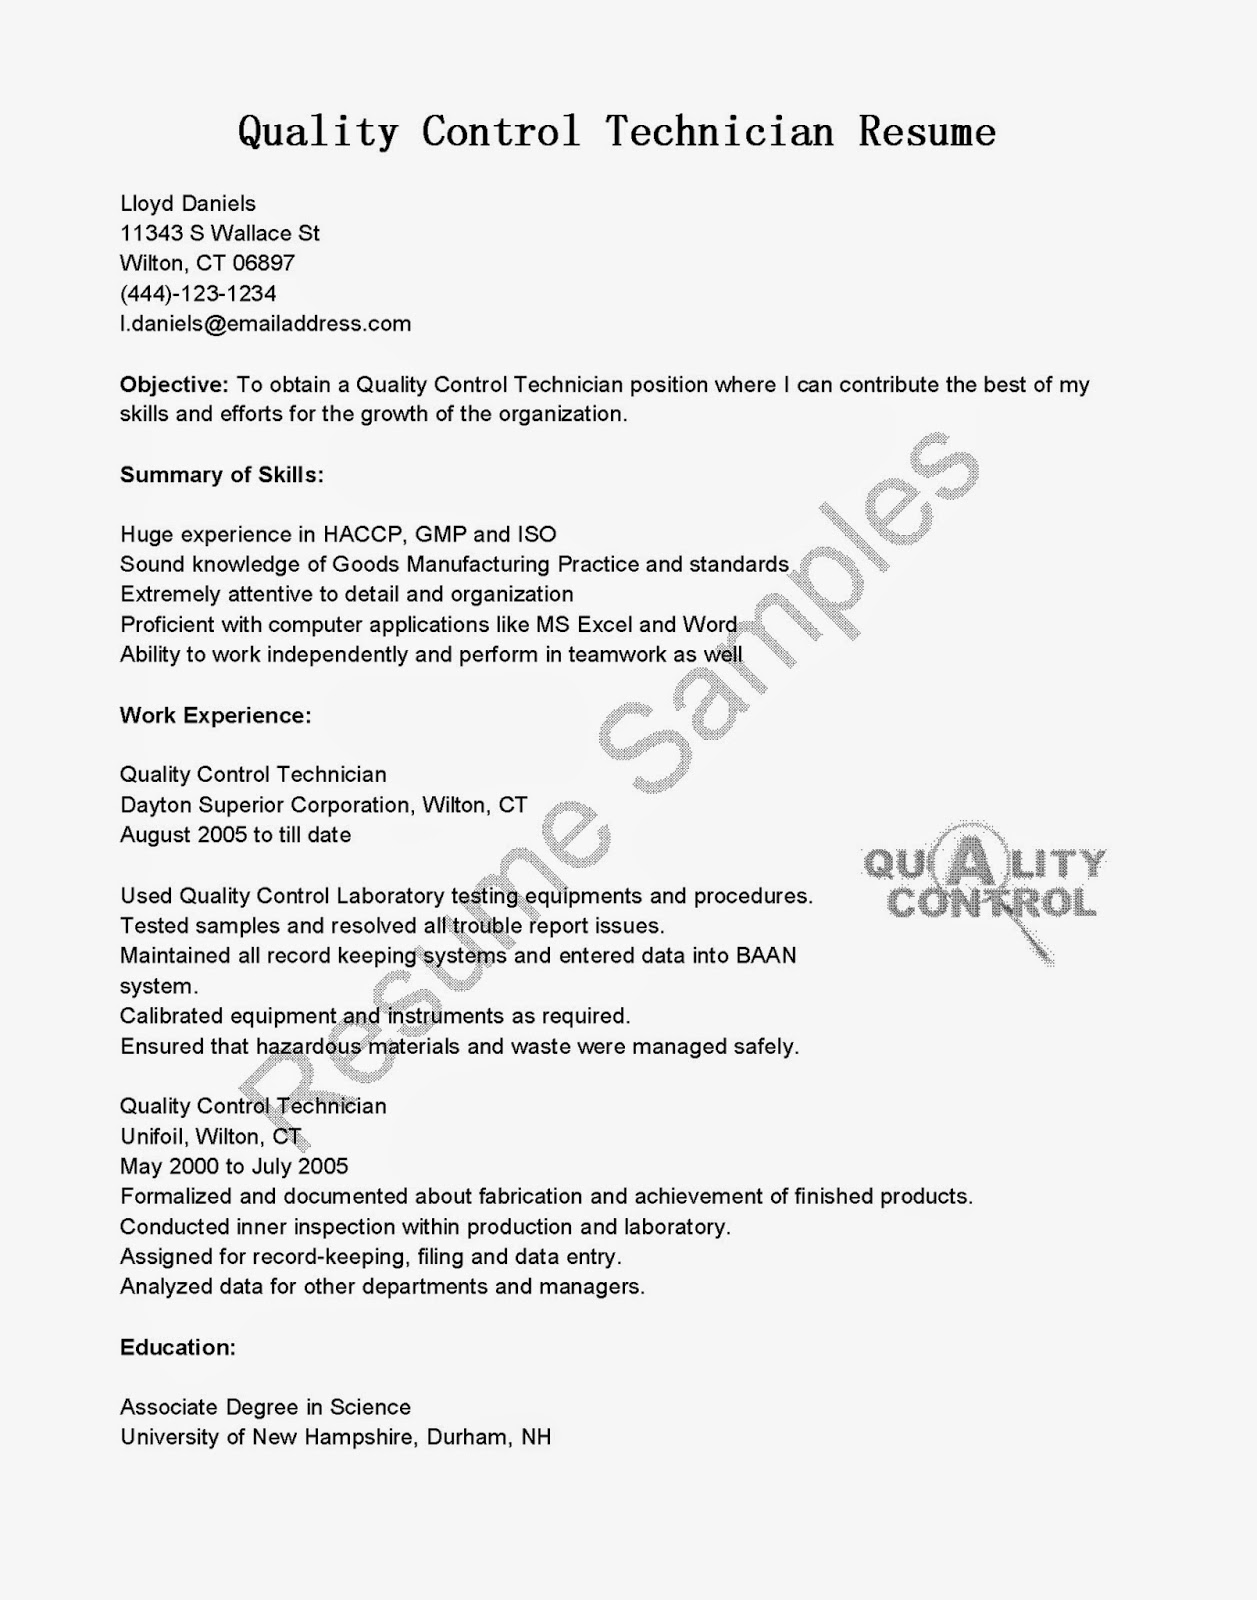 process control engineer resume hit mebelcom quality20control20technician20resume essays 20169282874 process control engineer sample resume process - Network Technician Resume Sample